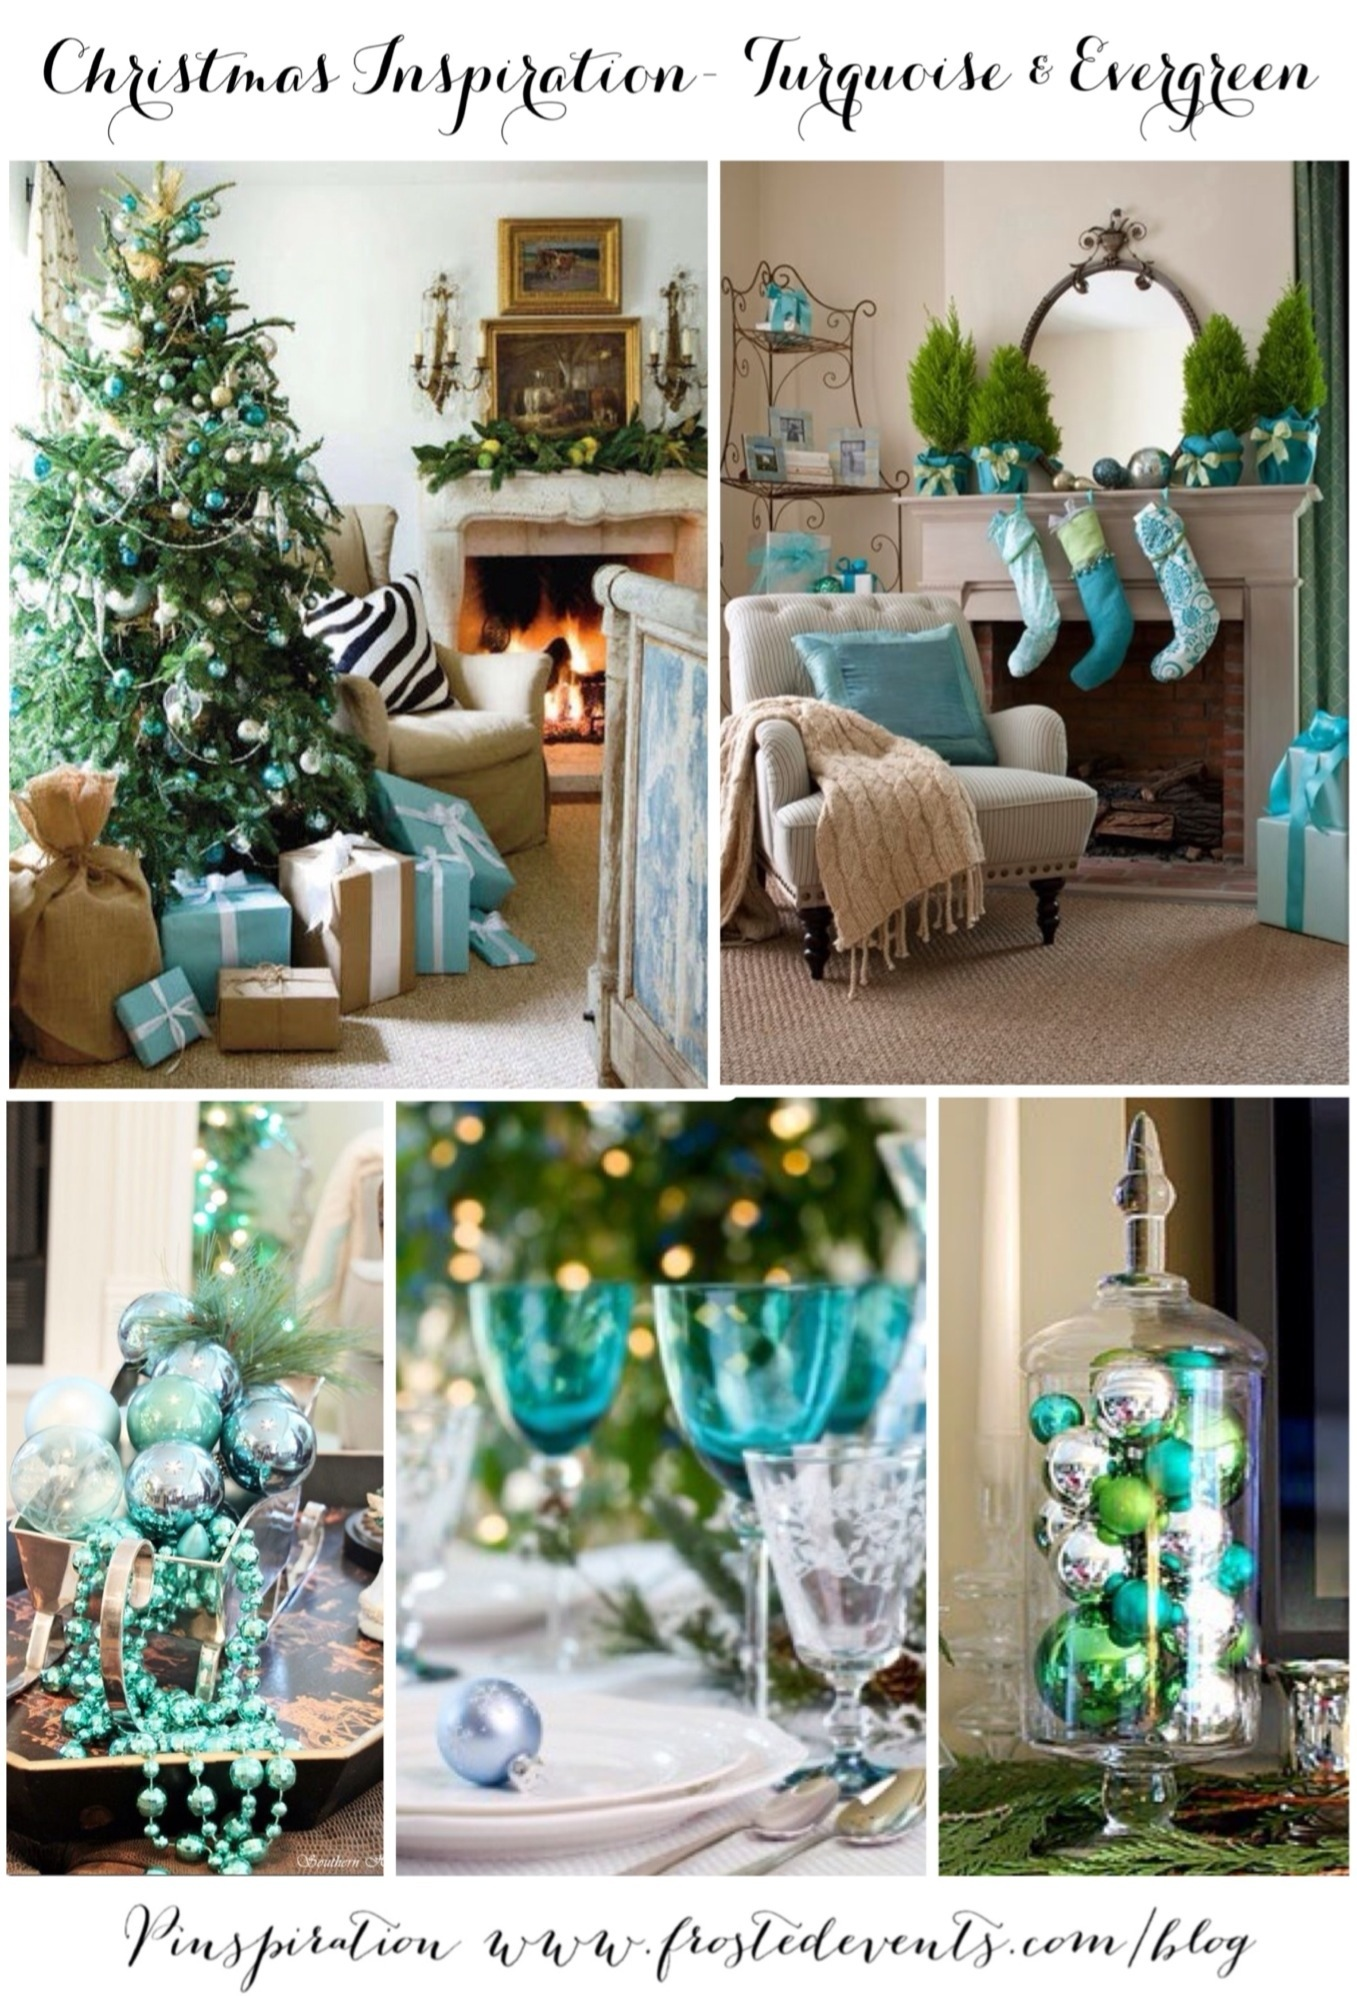 Christmas Inspiration- Turquoise and Evergreen www.frostedevents.com